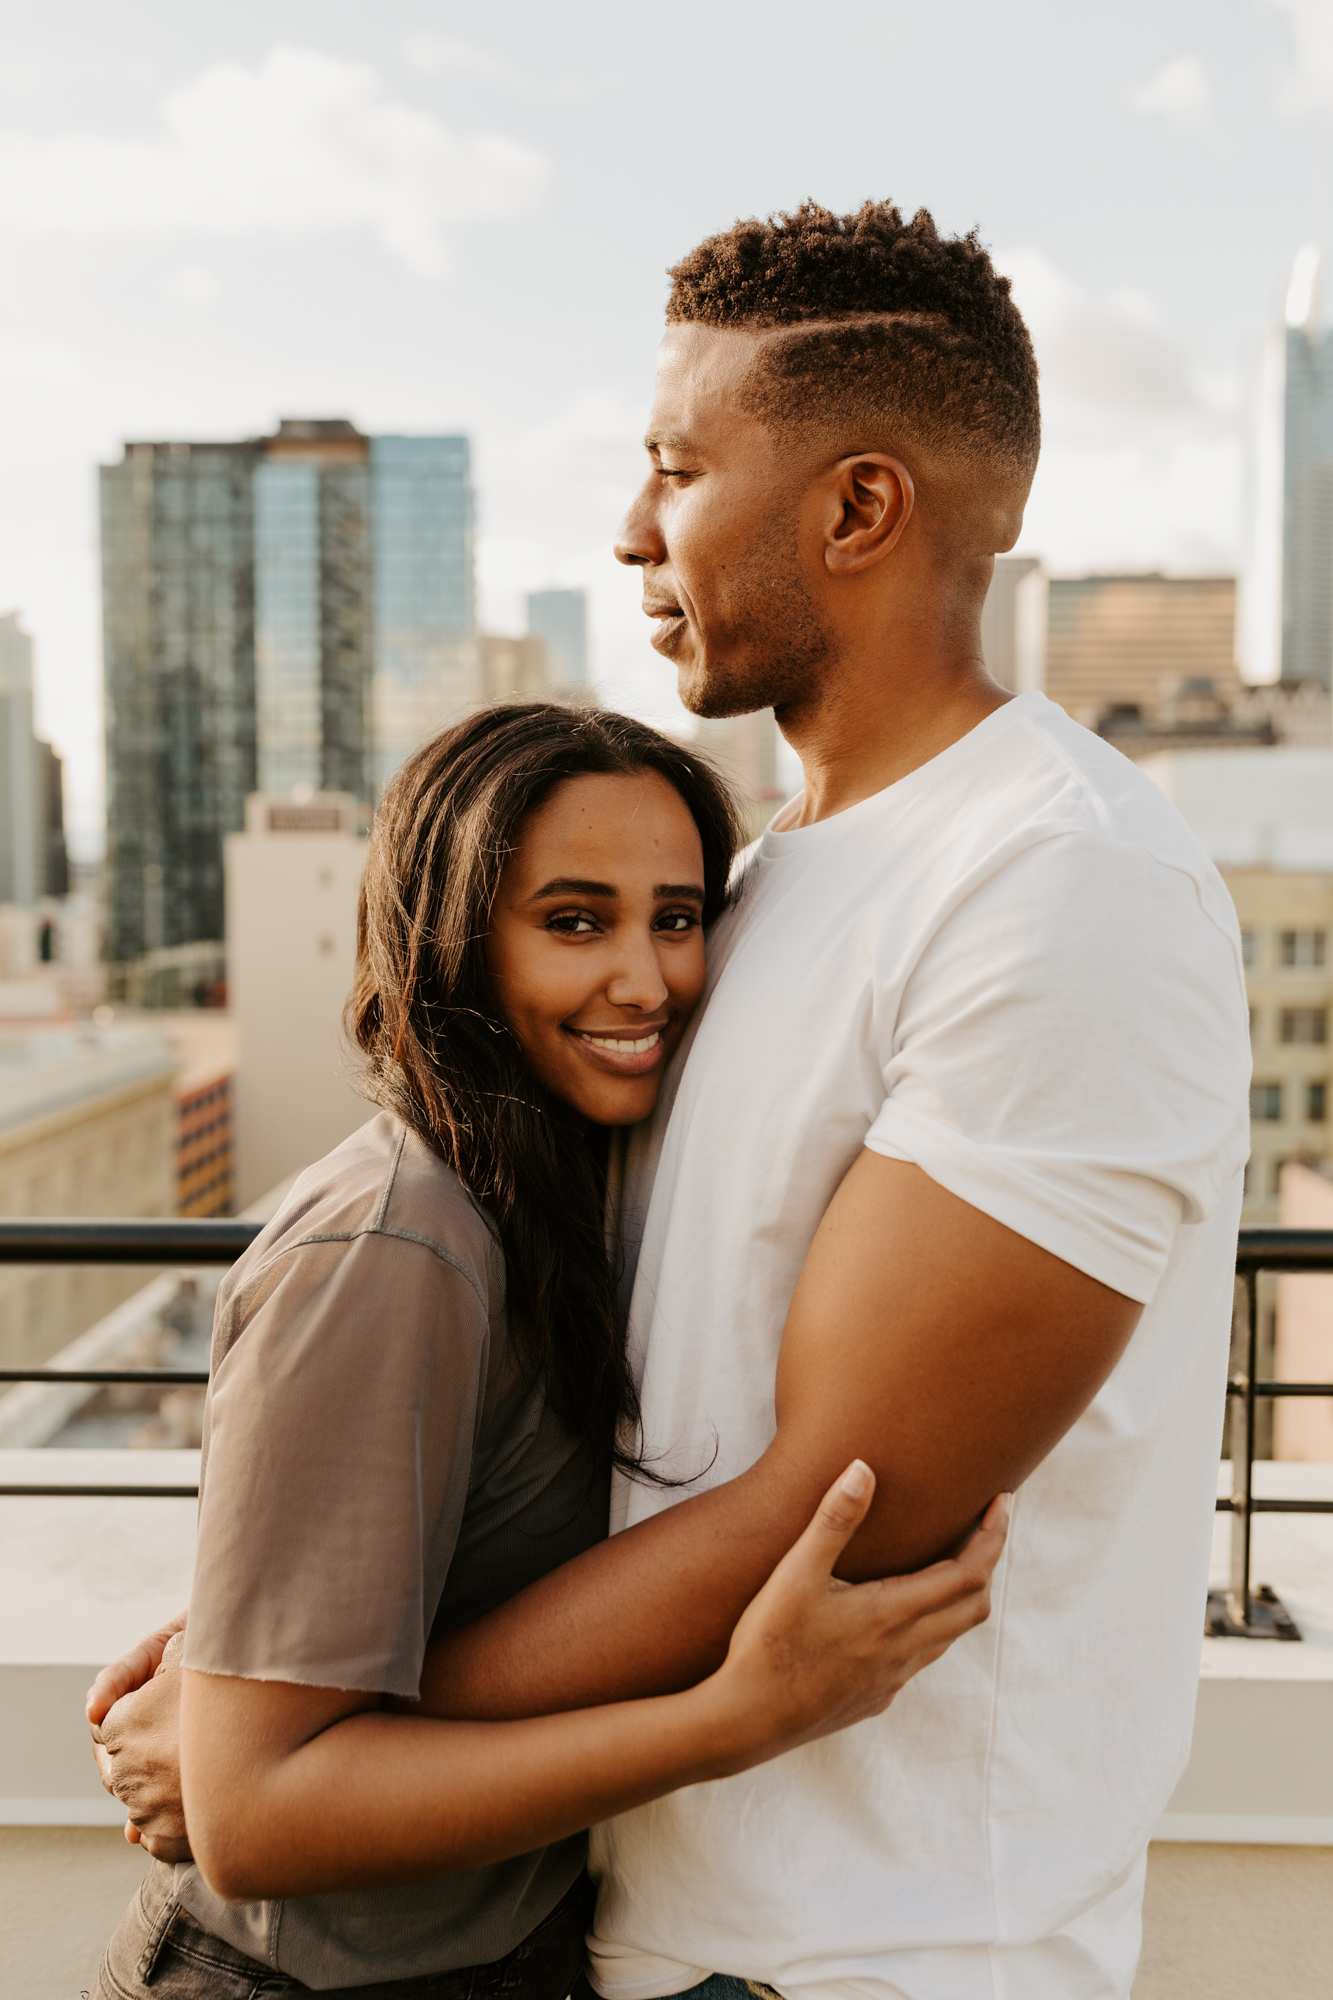 Downtown Los Angeles Rooftop Engagement Shoot | DTLA Rooftop Engagement | Los Angeles Wedding Photographer | Los Angeles Engagement Photographer | Tida Svy | www.tidasvy.com